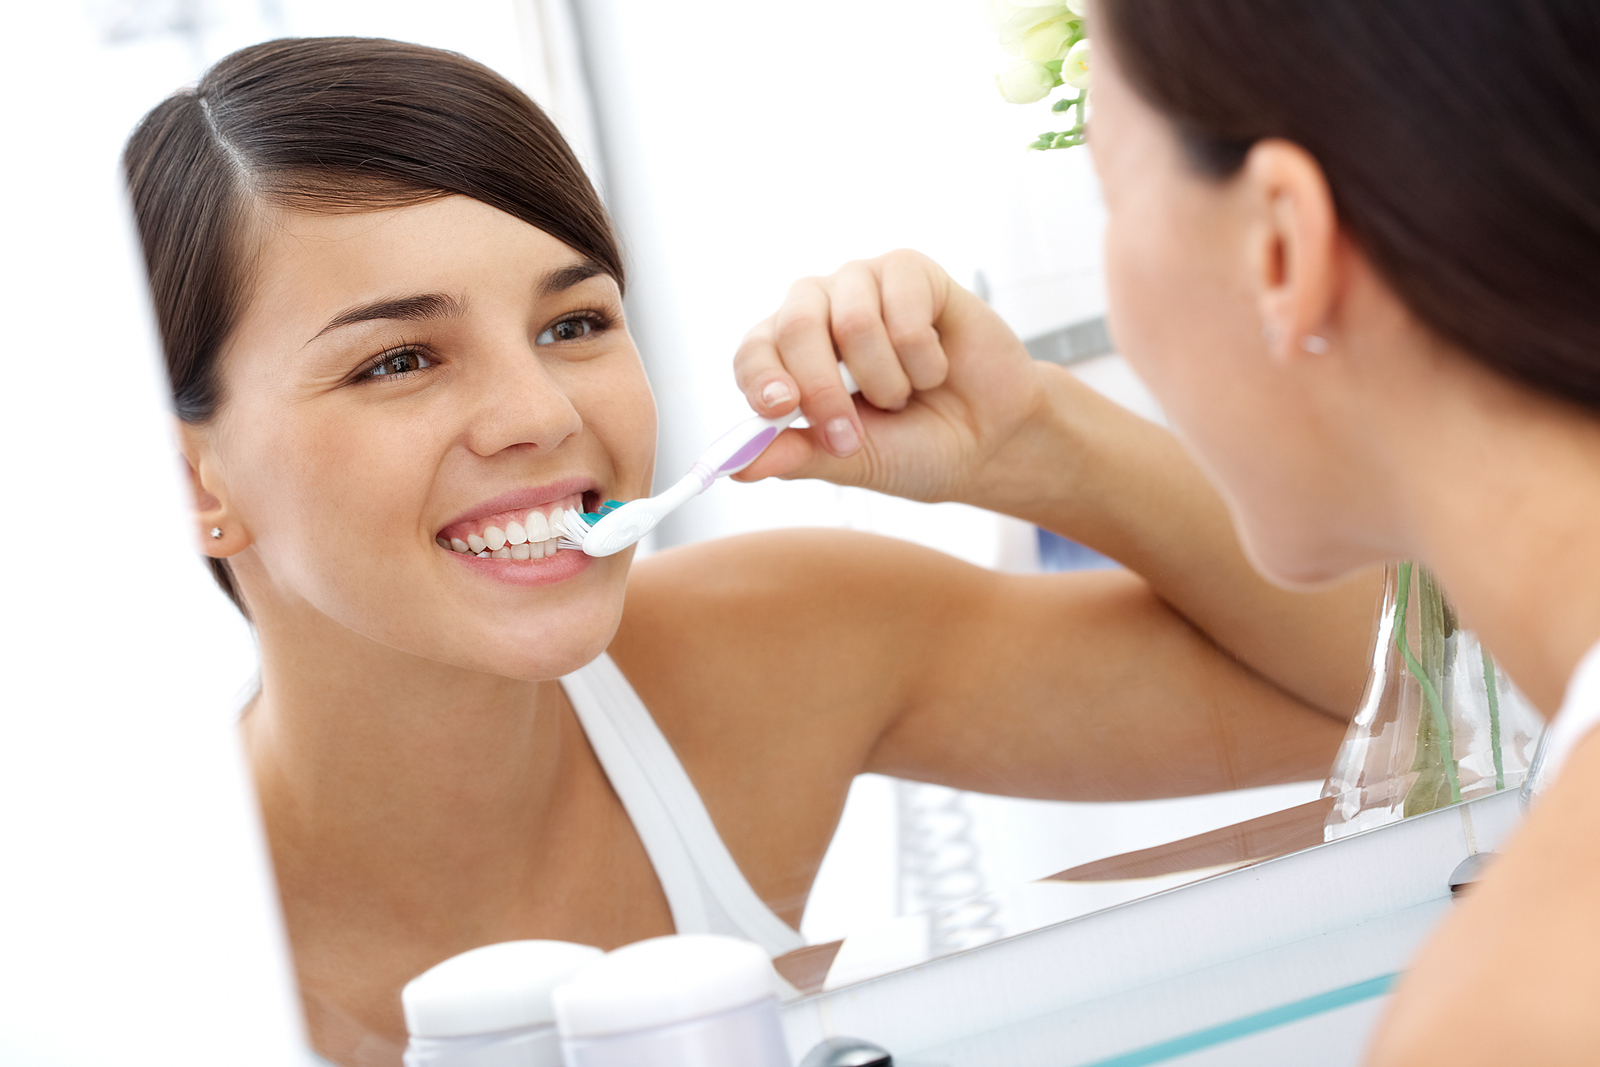 Girl brushes her teeth in the mirror while smiling.